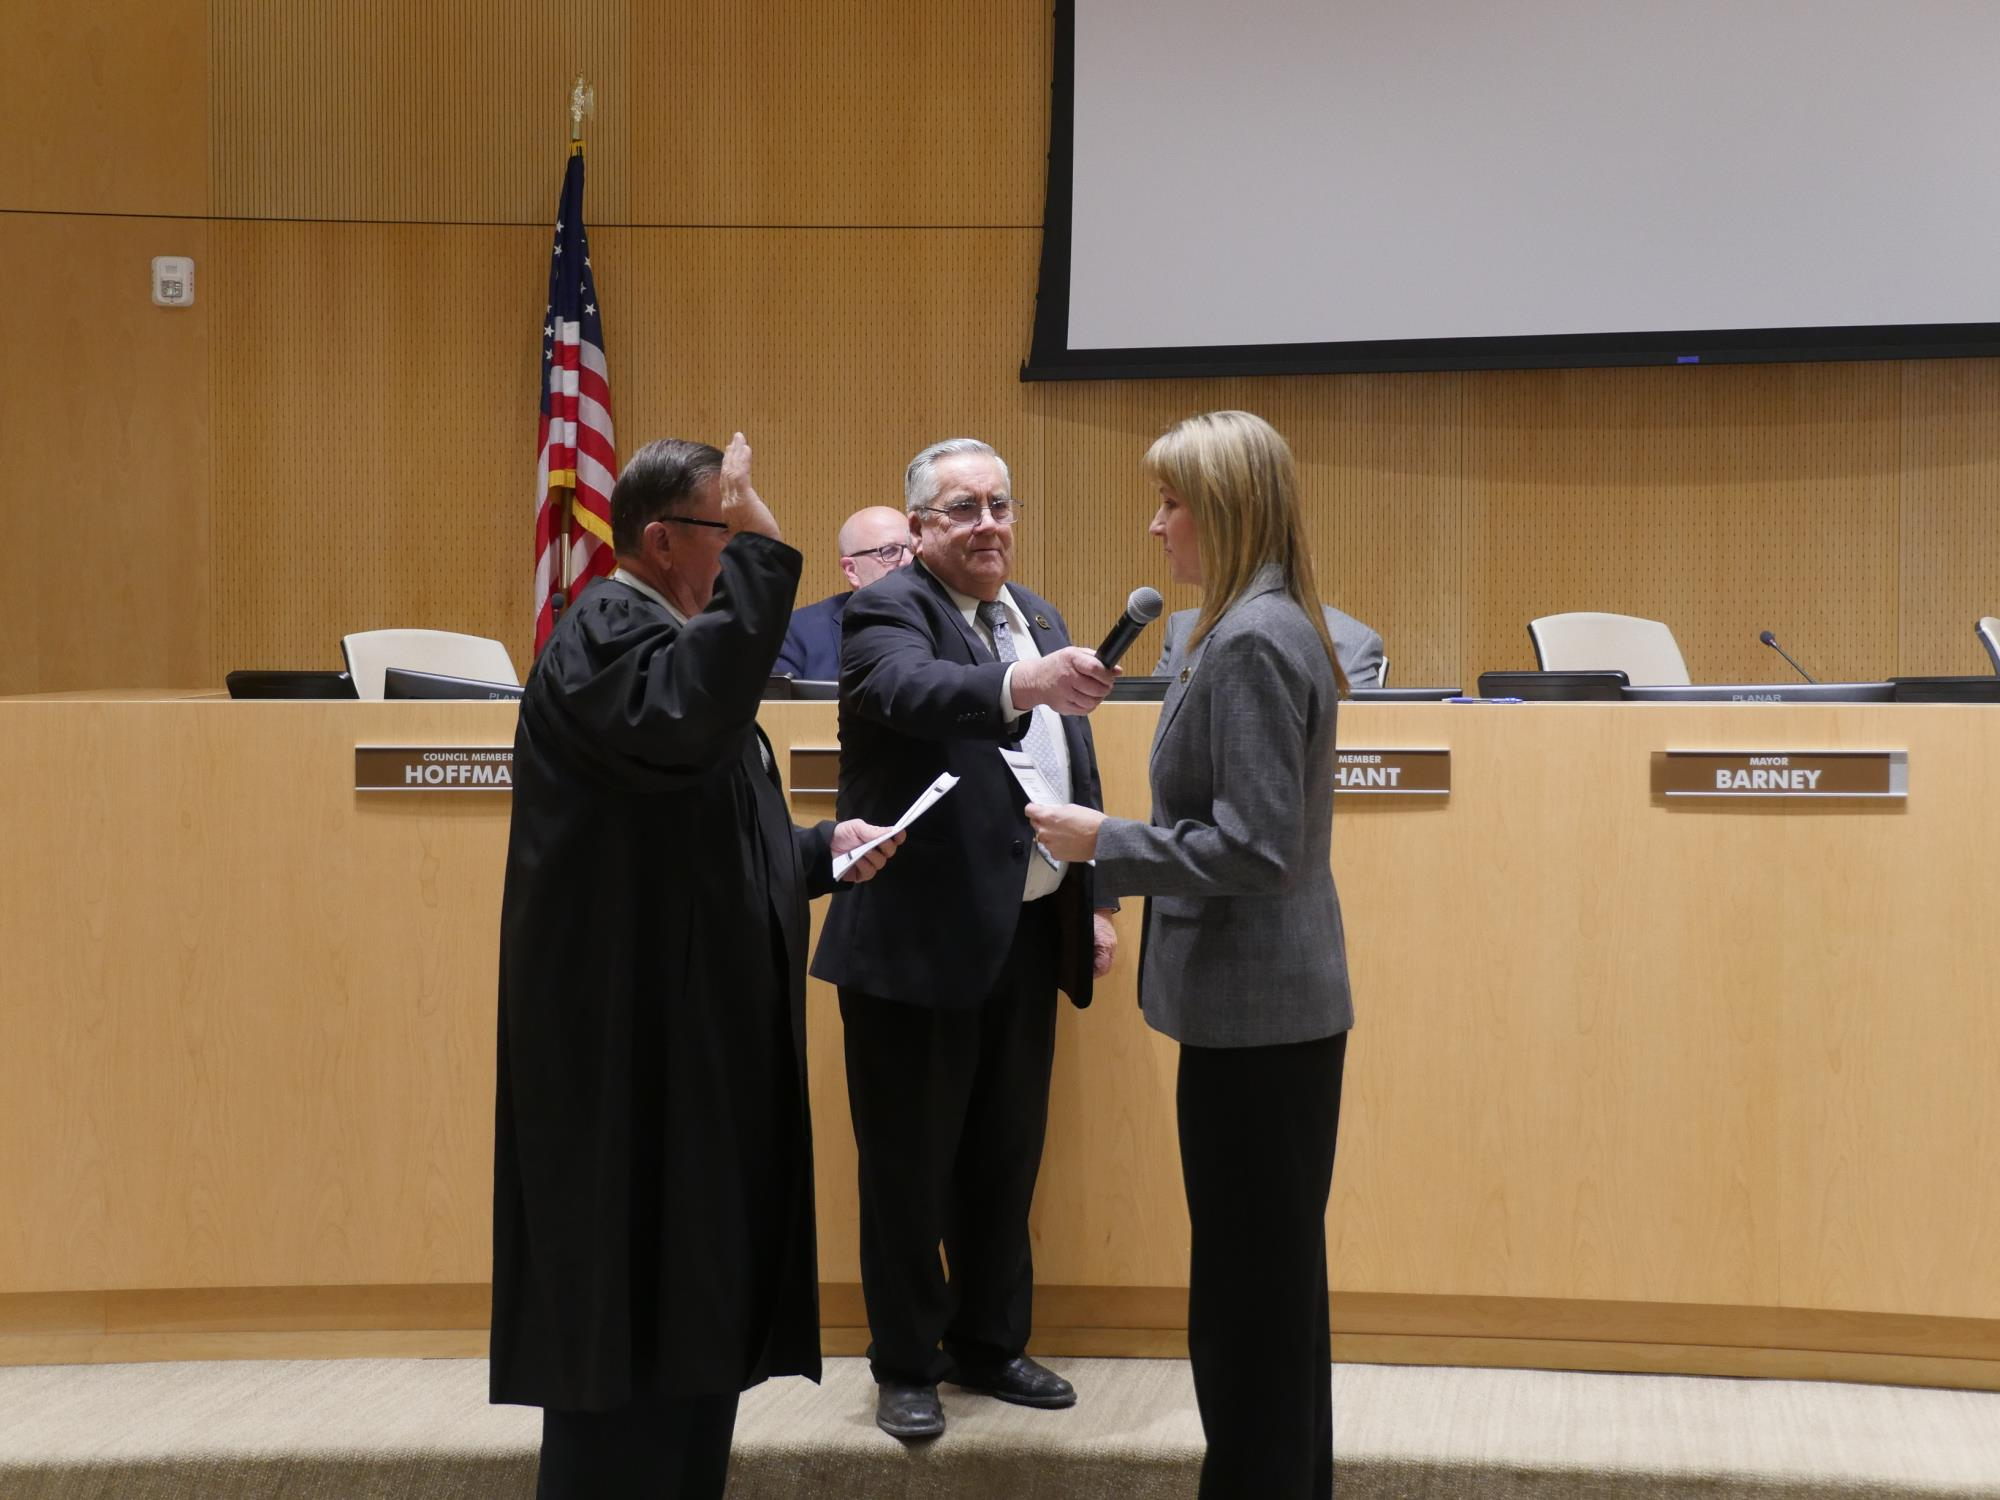 Council Member Oliphant being sworn into office at the January 16 Town Council Meeting (1)